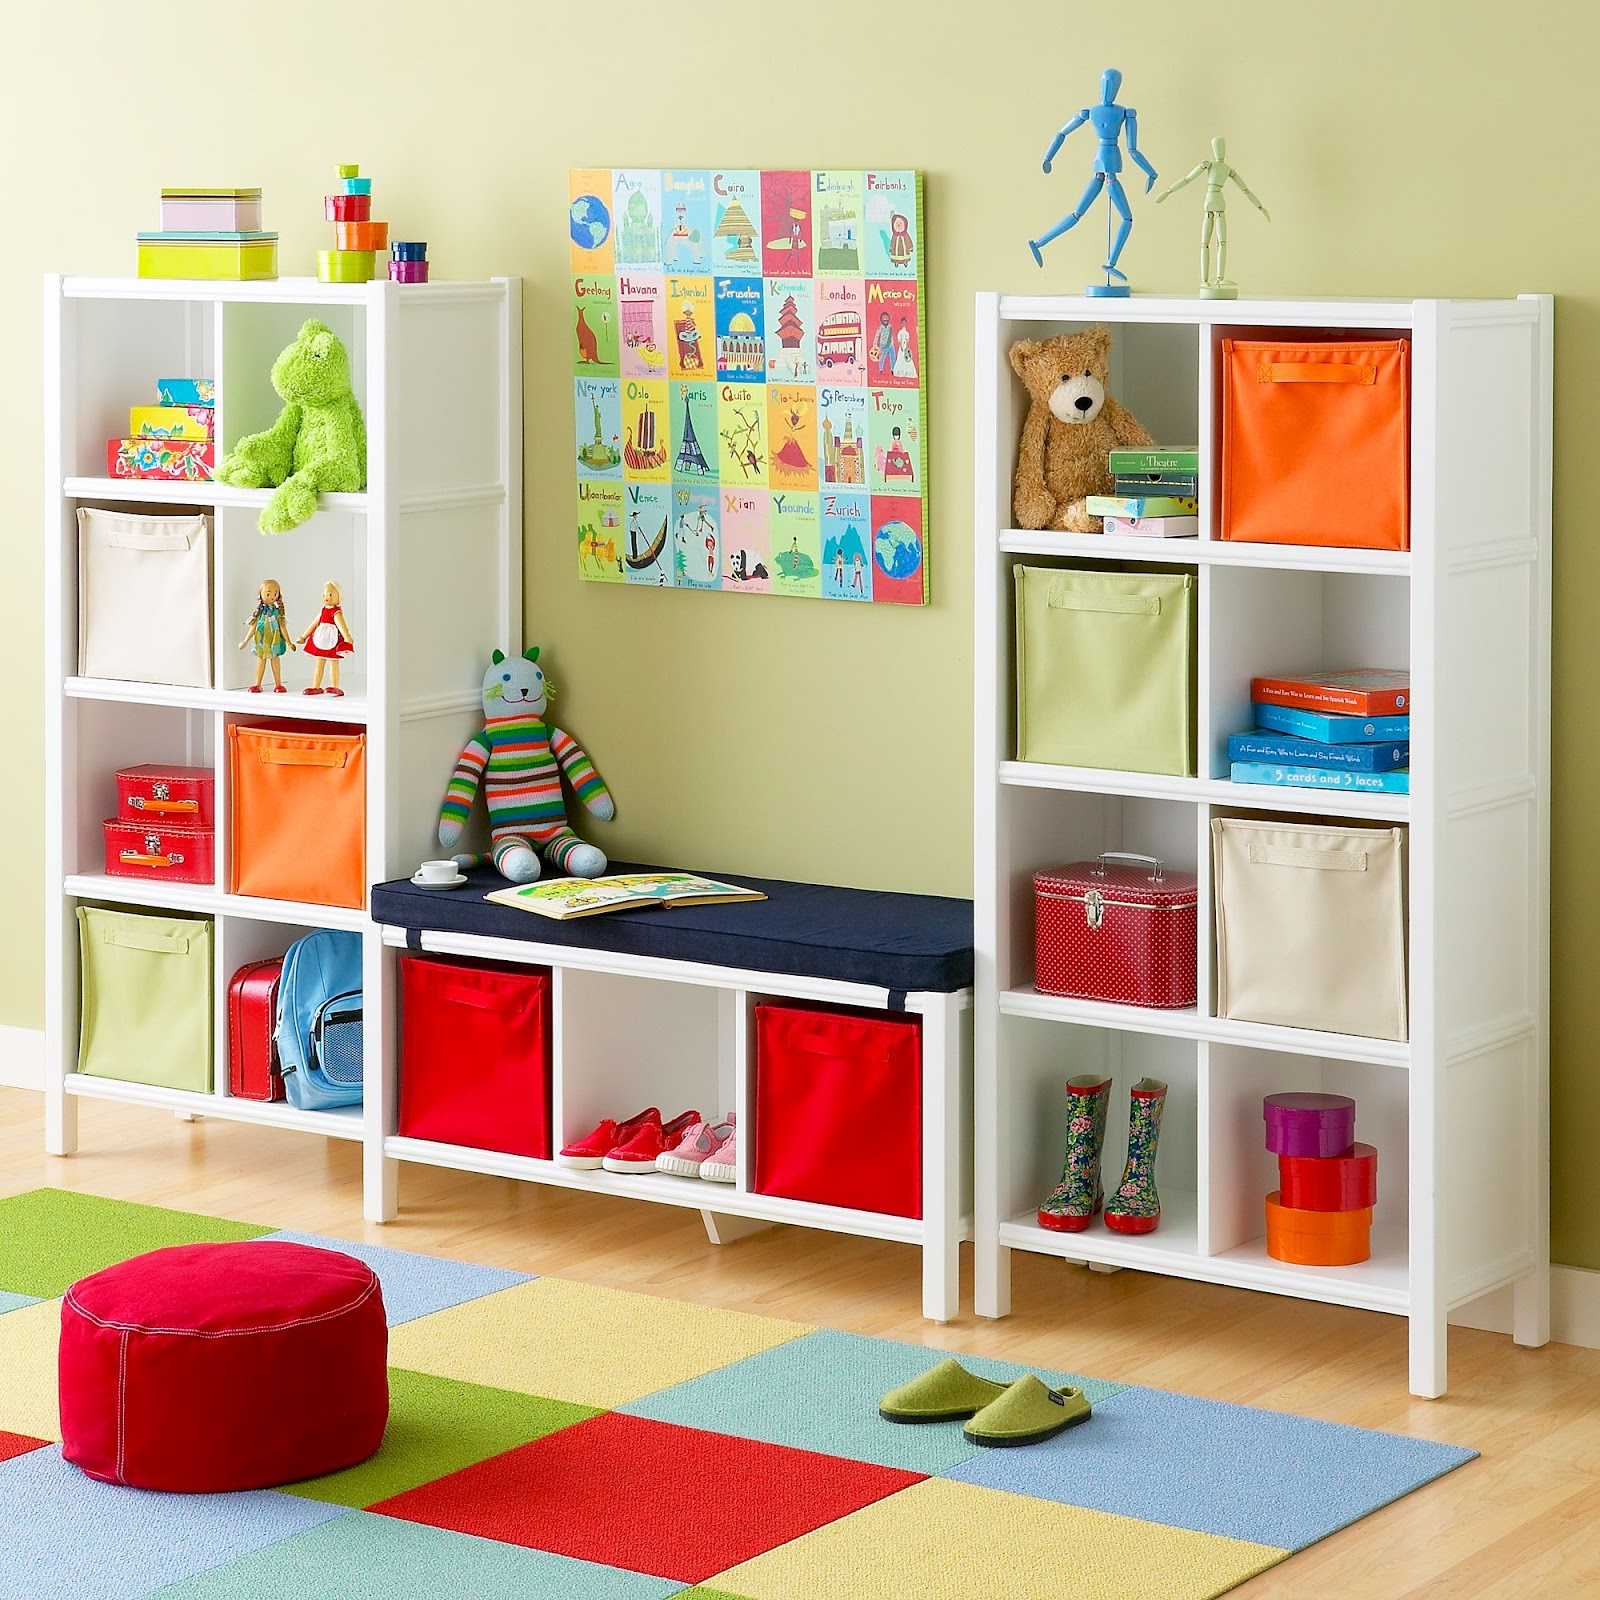 Cube storage in primary colors child\'s playroom | Interior Design ...